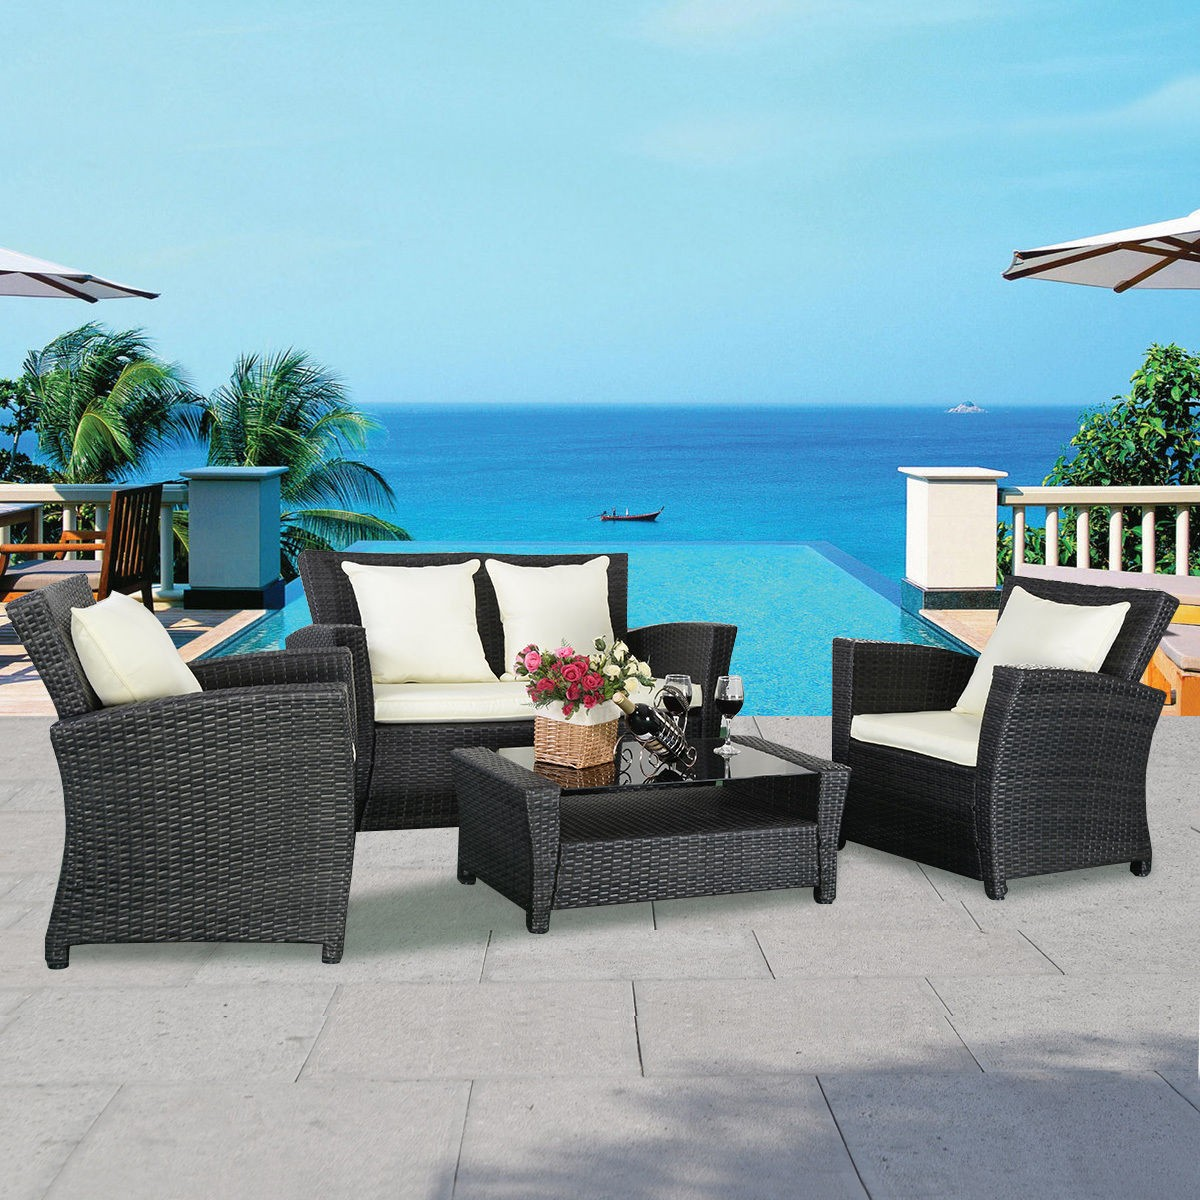 Modern all weather wicker furniture set for outdoor patio